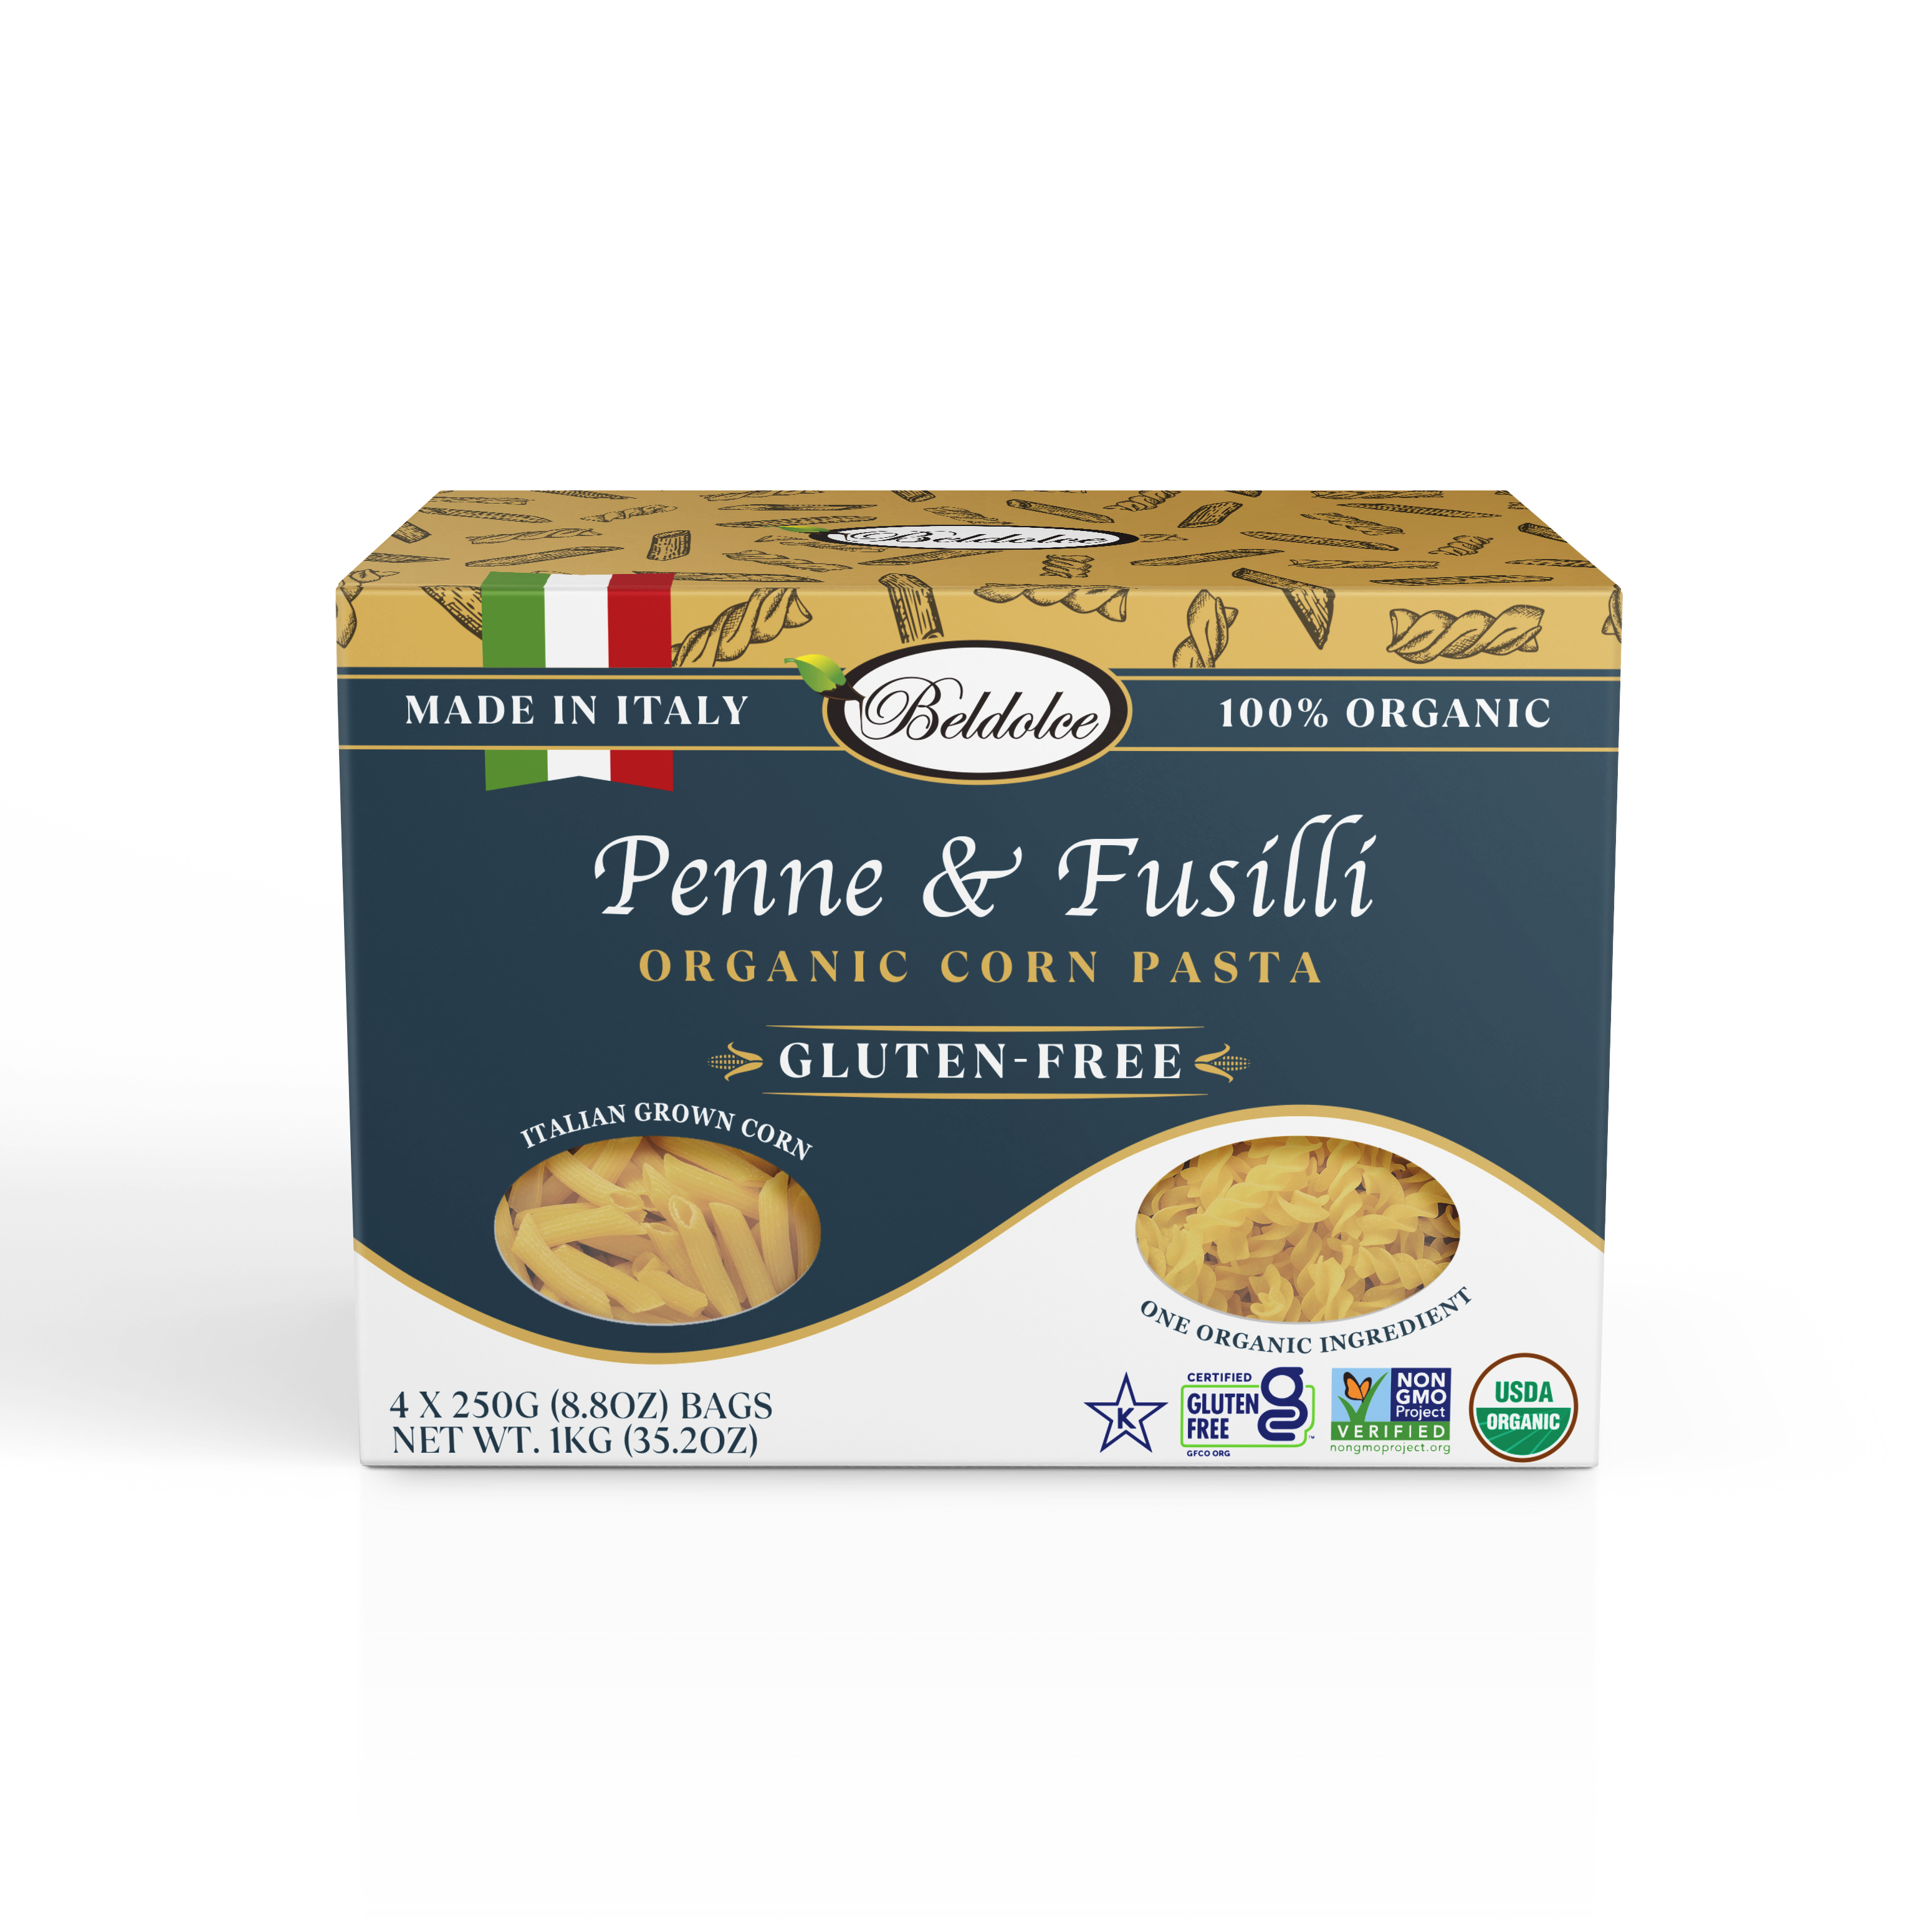 Penne & Fusilli 4-Pack elegant render of the front of the box